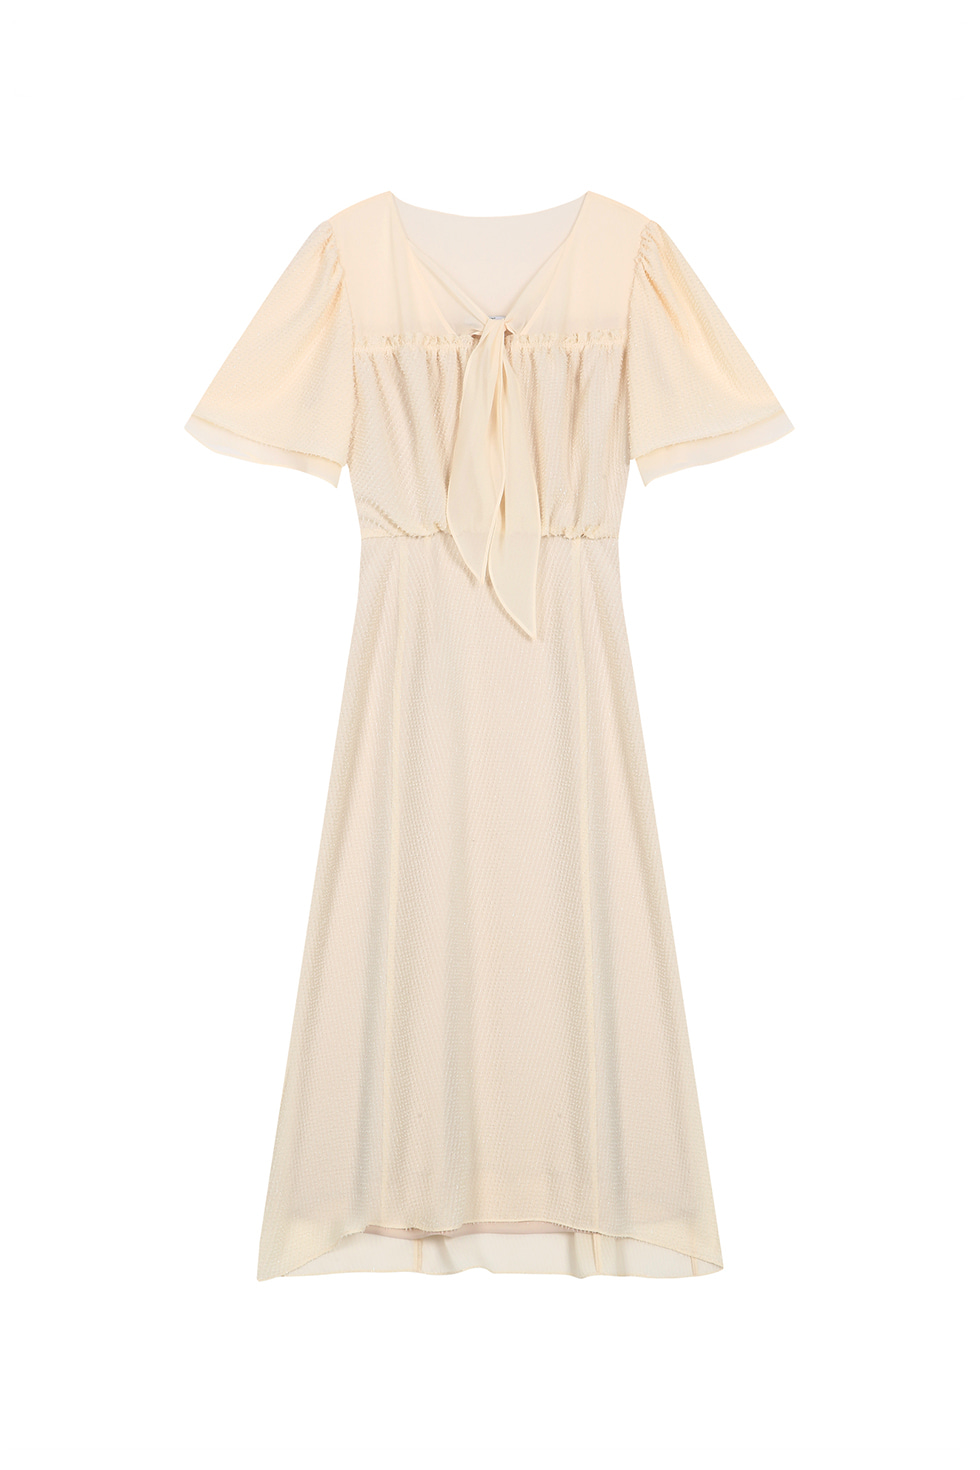 LAYERED CHIFFON DRESS - IVORY